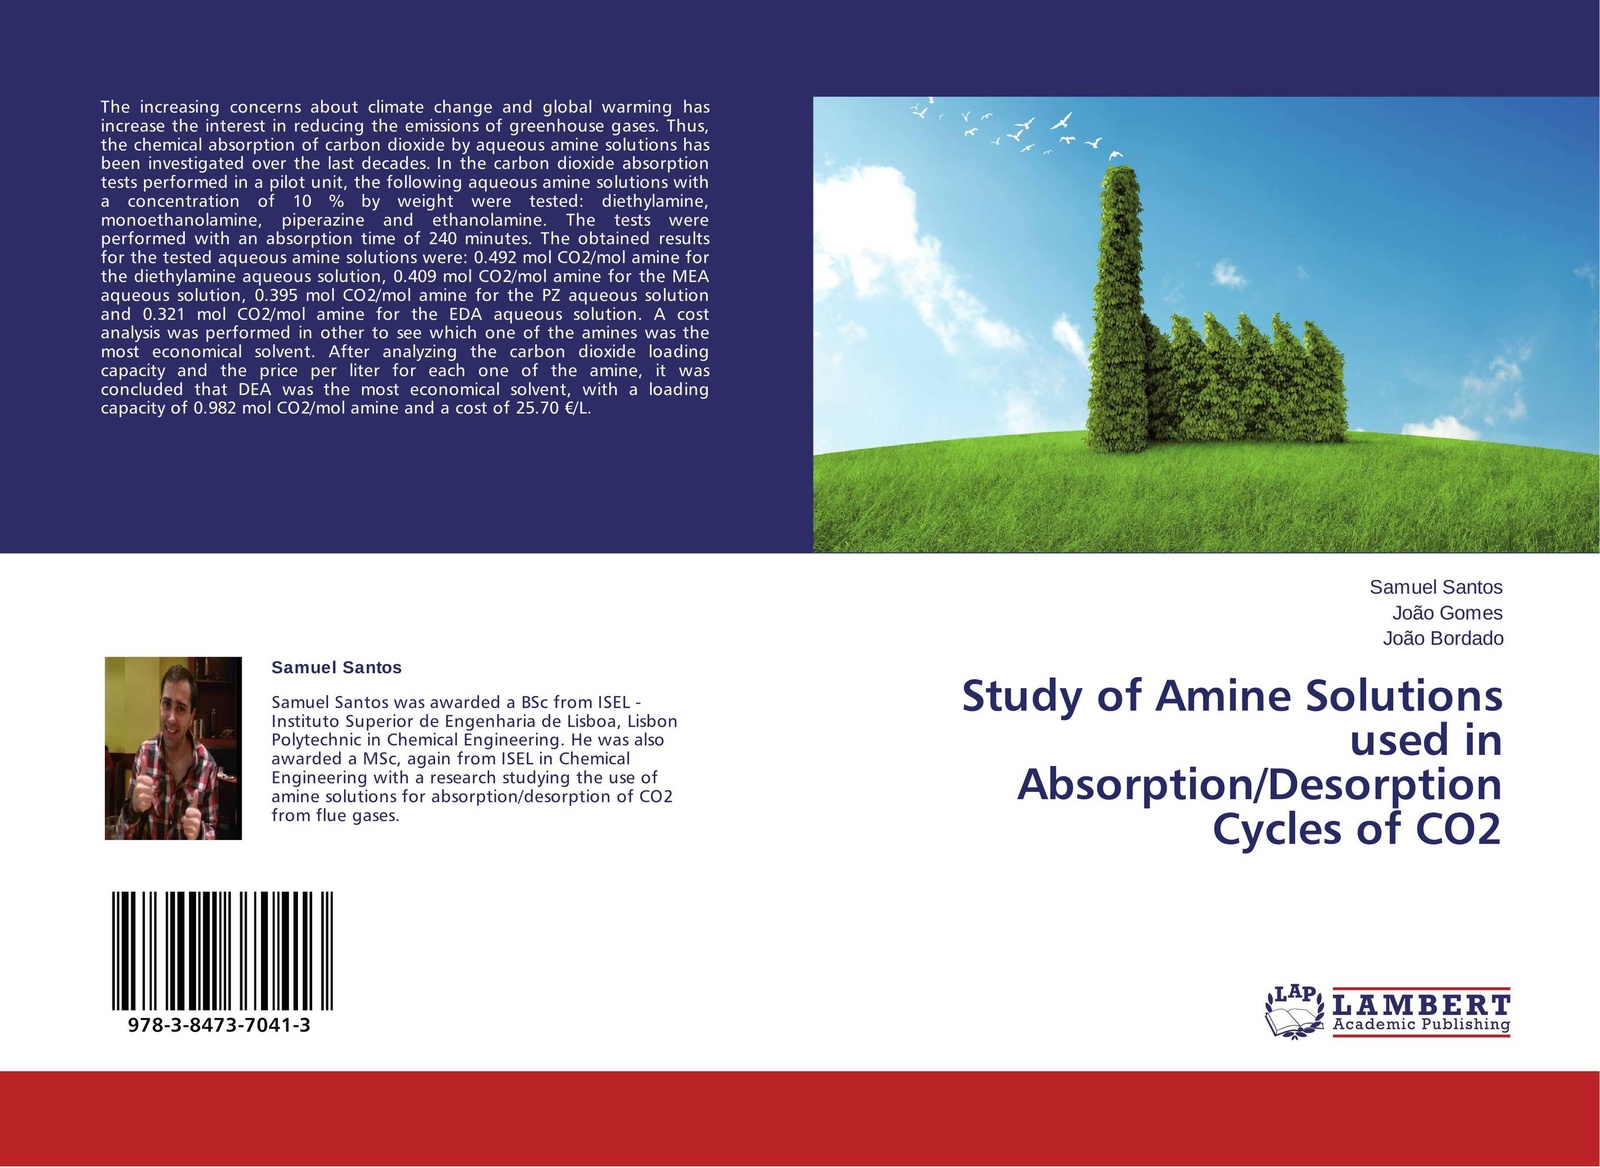 Samuel Santos,Joao Gomes and João Bordado Study of Amine Solutions used in Absorption/Desorption Cycles of CO2